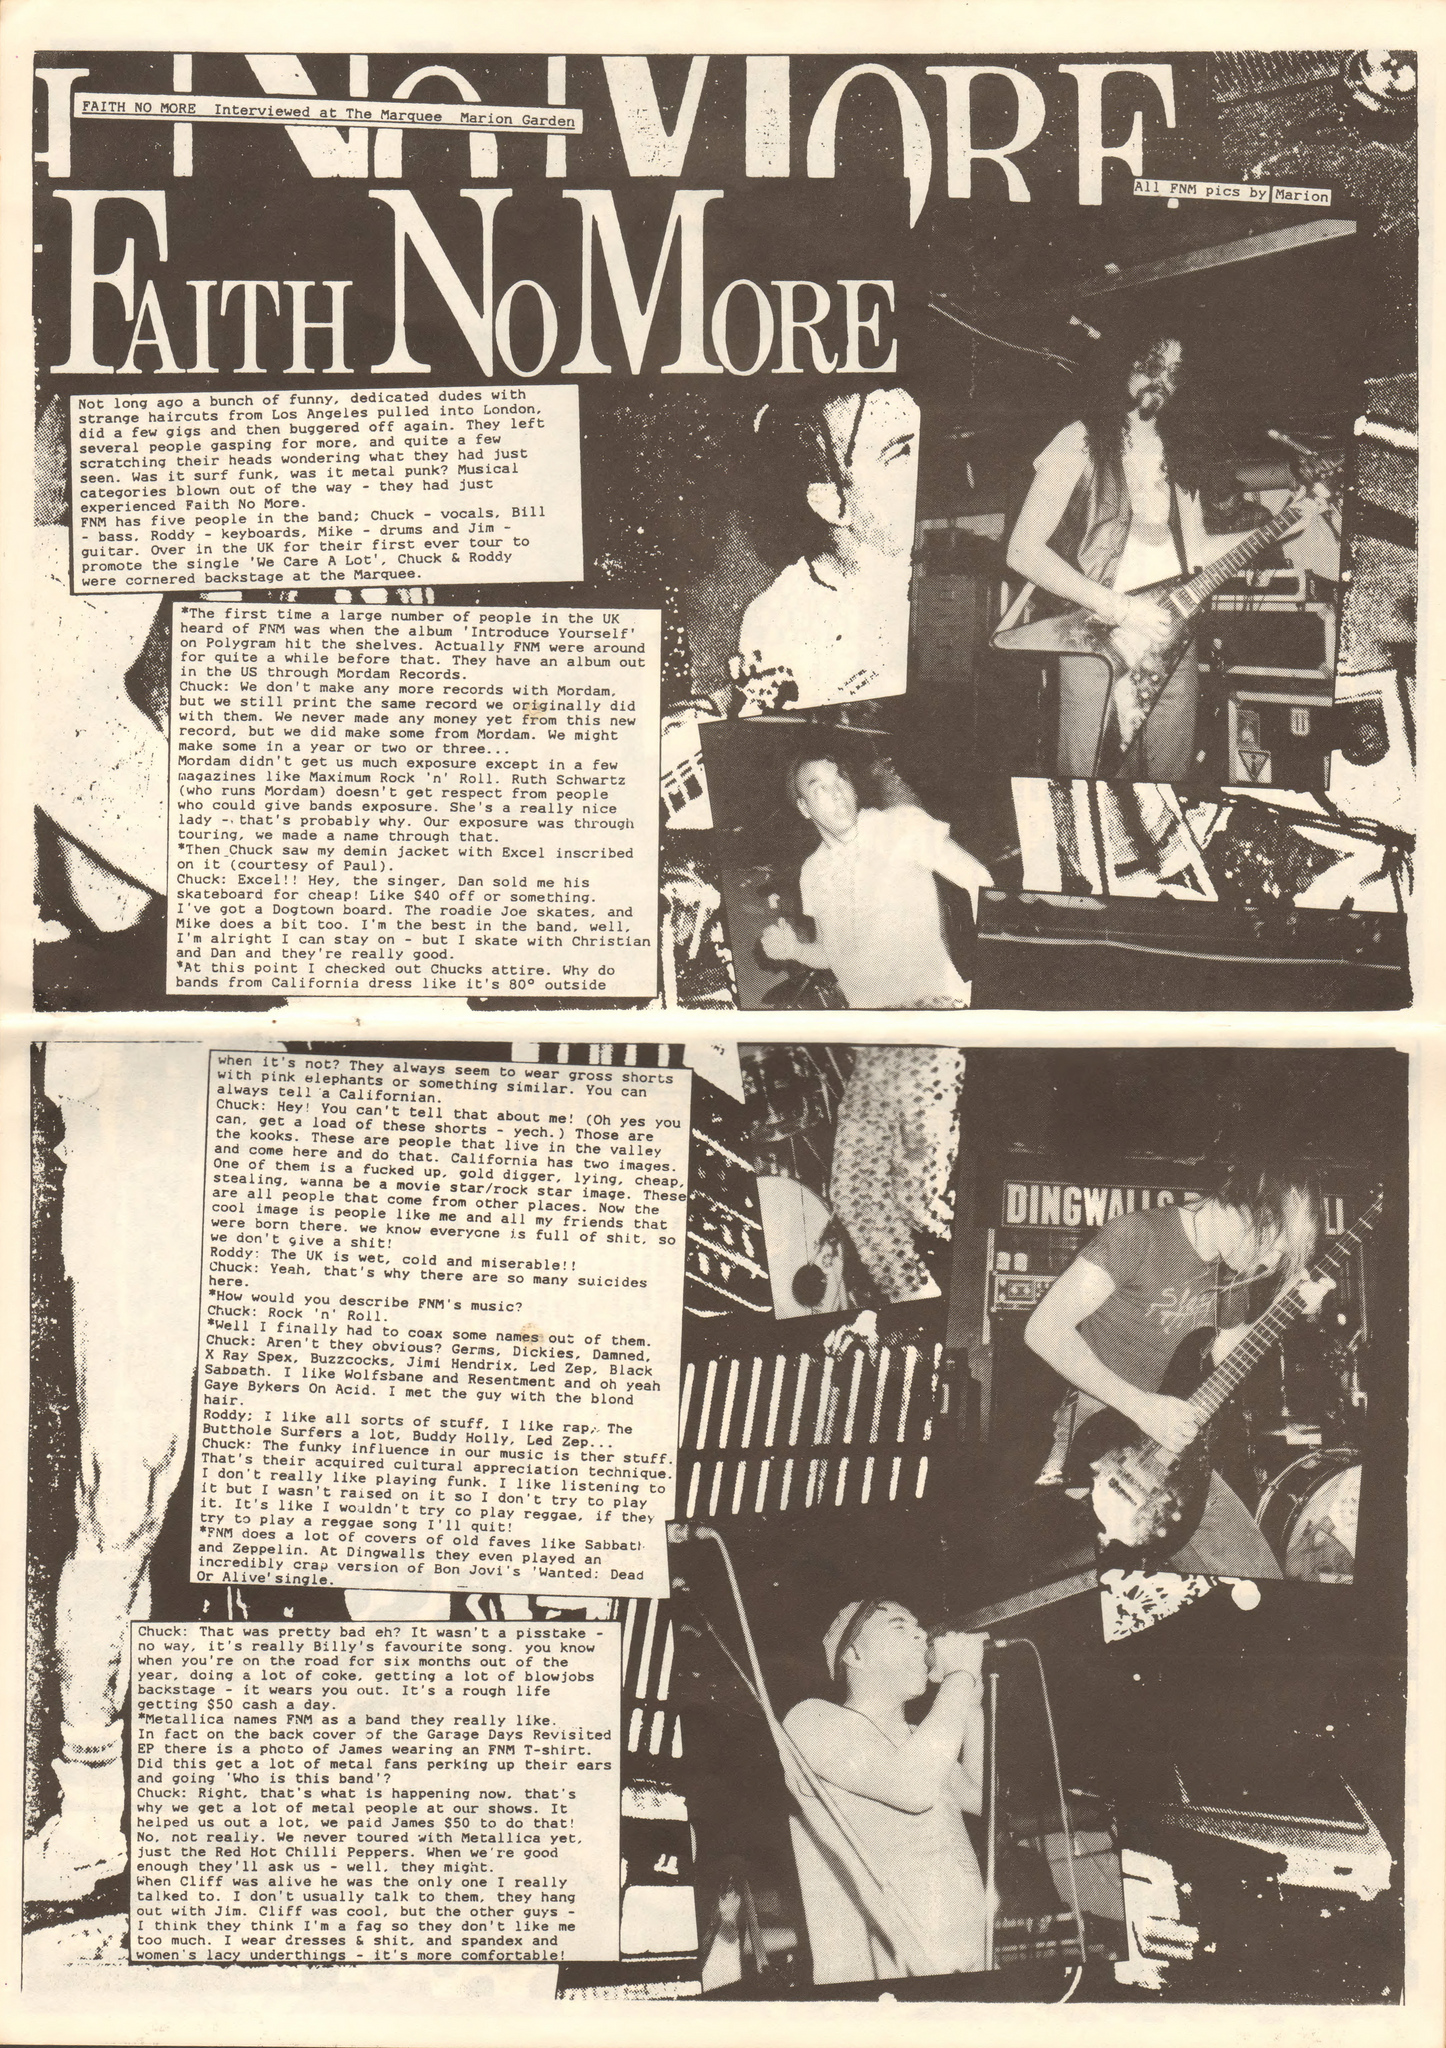 Faith no more Interview 1988 page 1